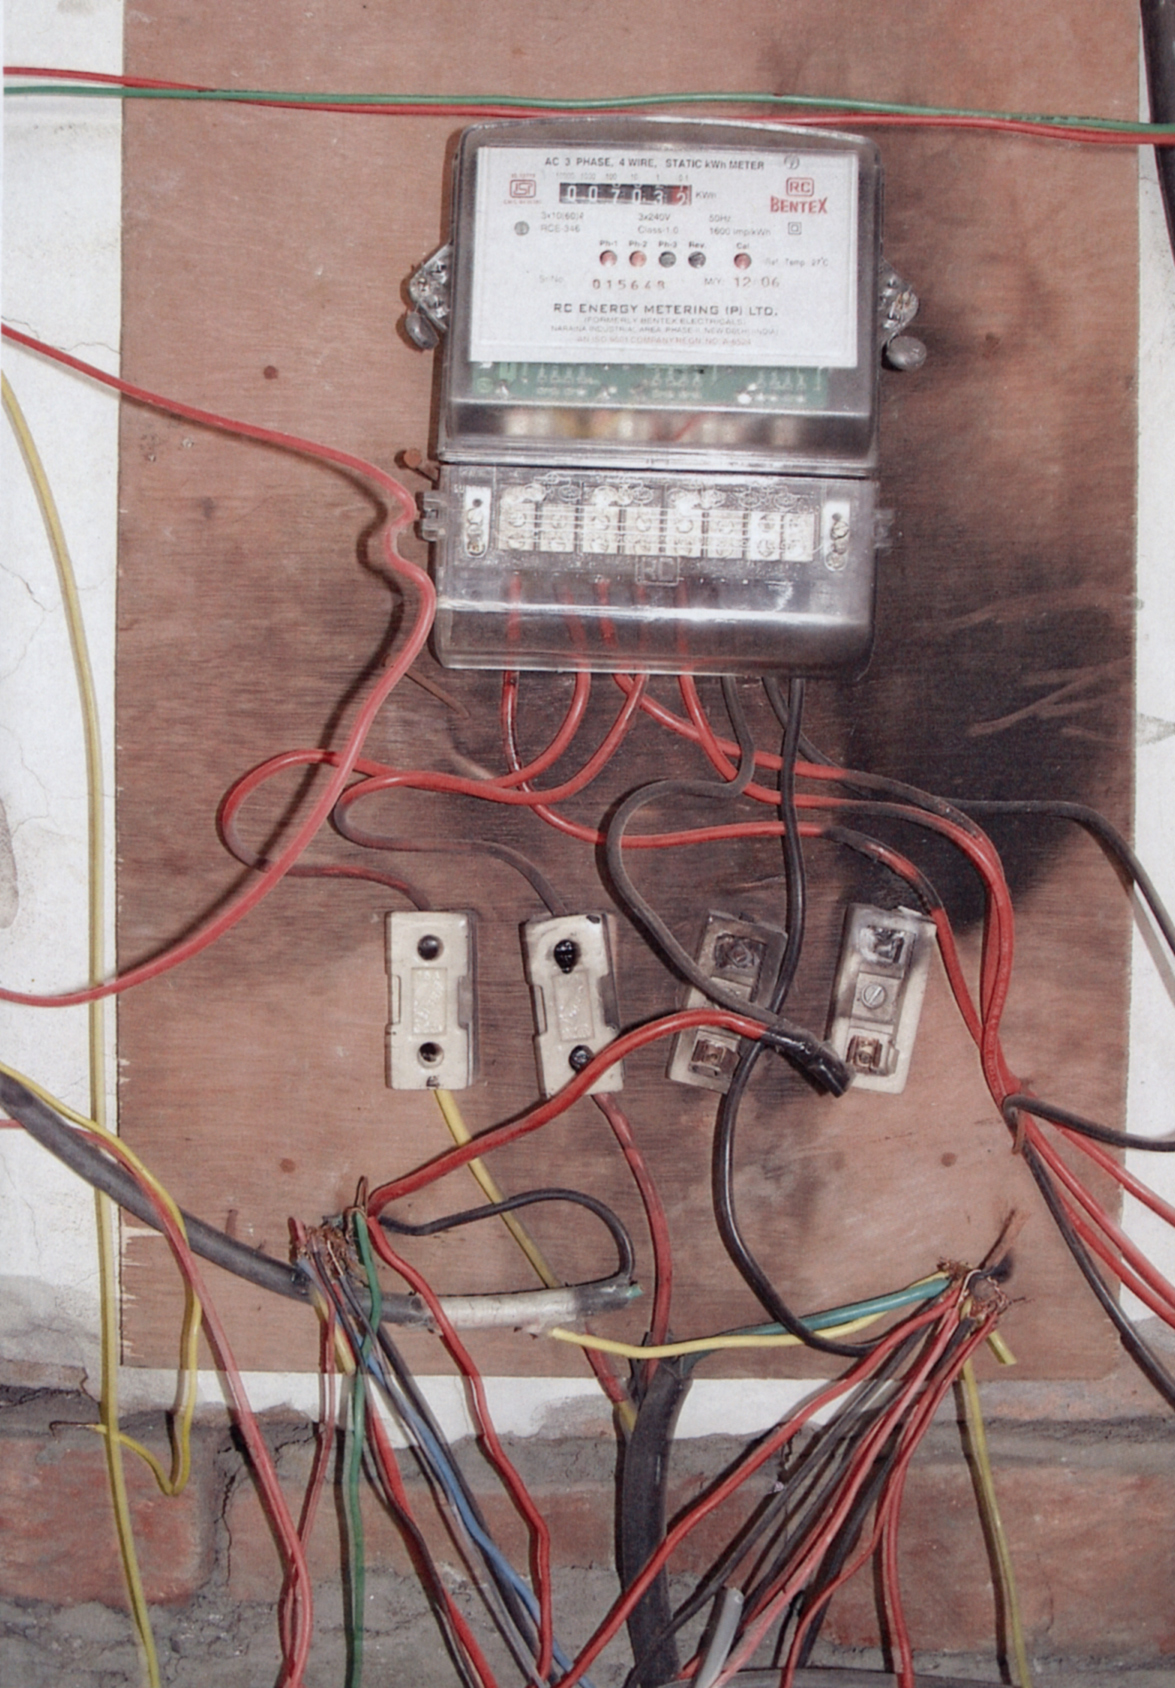 Bad Cable Diagram | Wiring Diagram on fan switch wiring diagram, seat heater wiring diagram, starter relay wiring diagram,